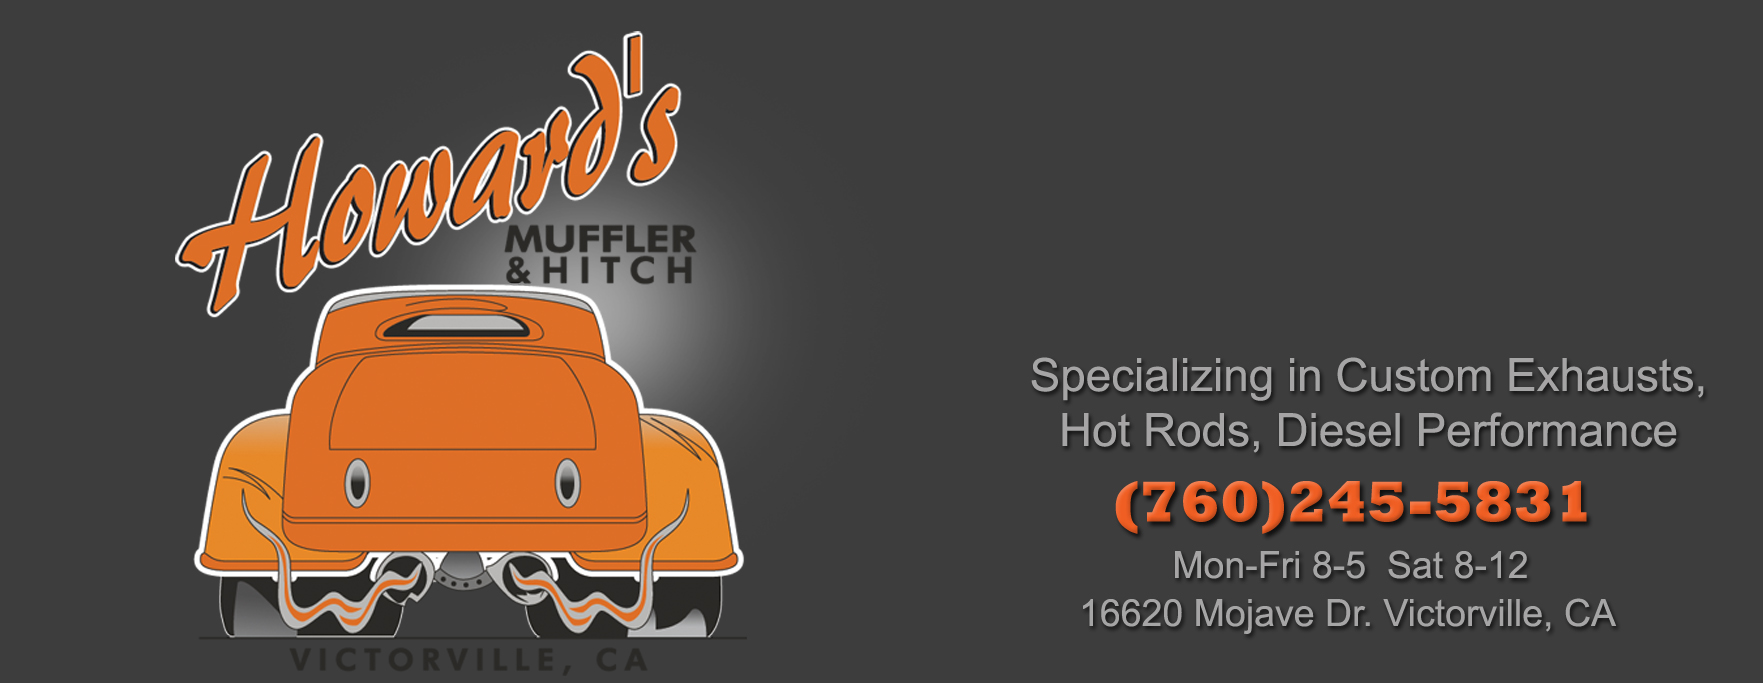 Howards Muffler and Hitch, Victorville, California